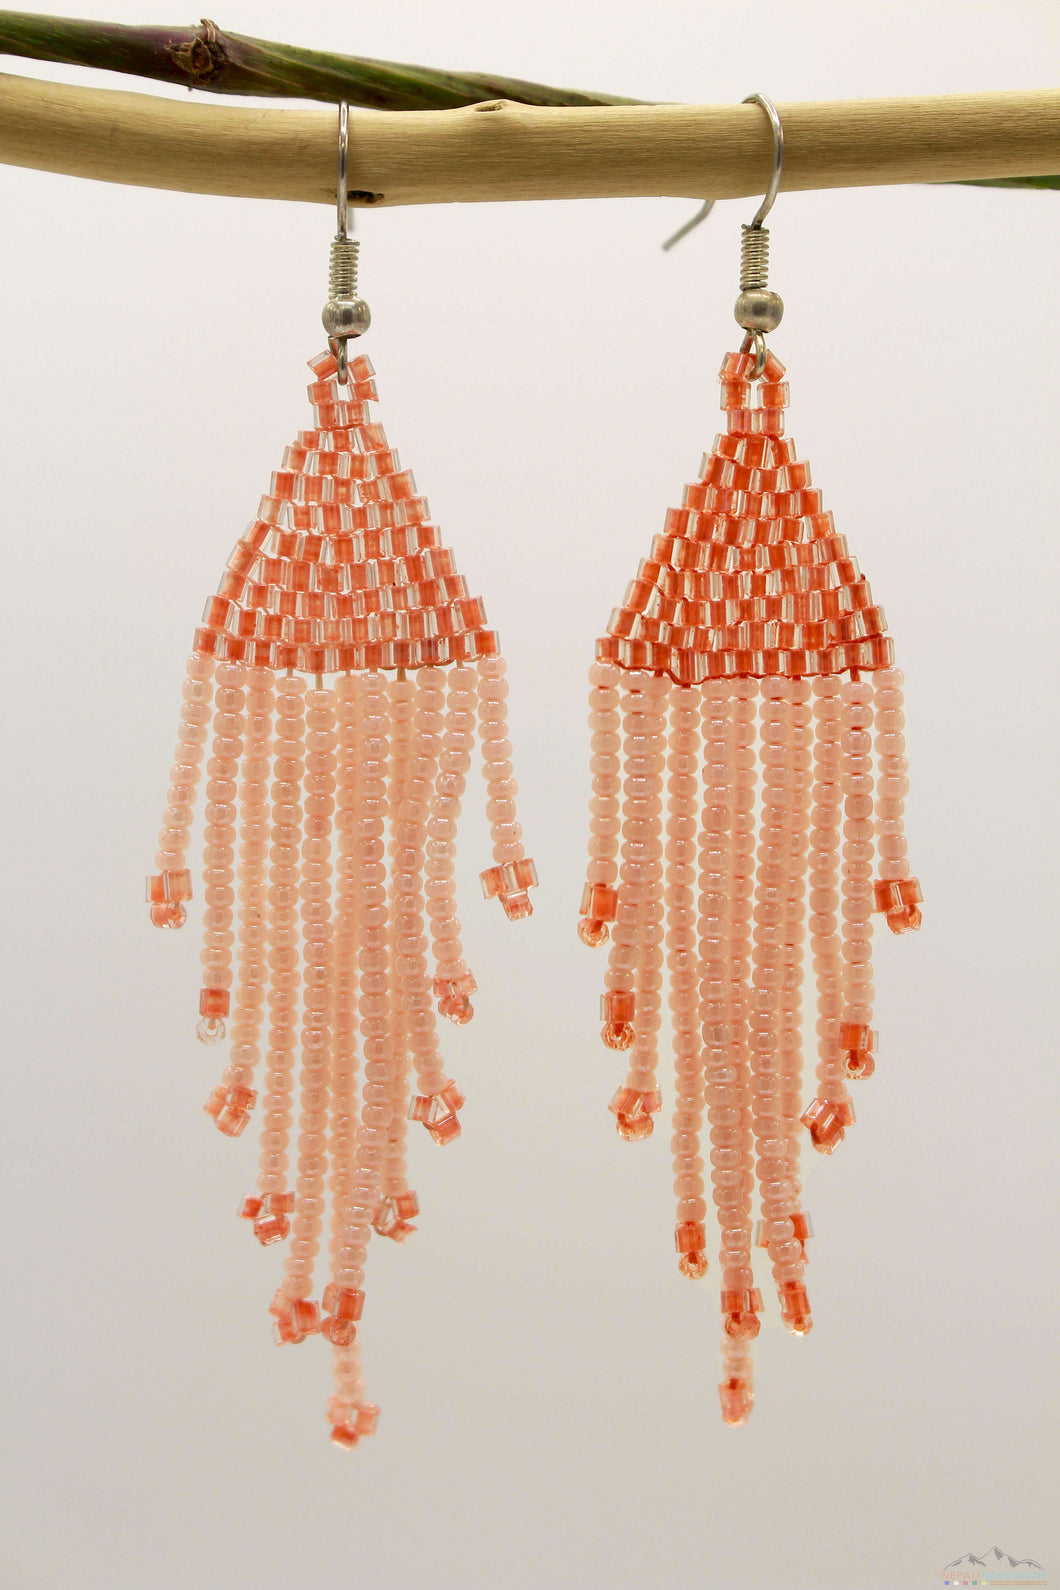 Light Salmon Orange Glass Beads Triangular Chandelier Earring